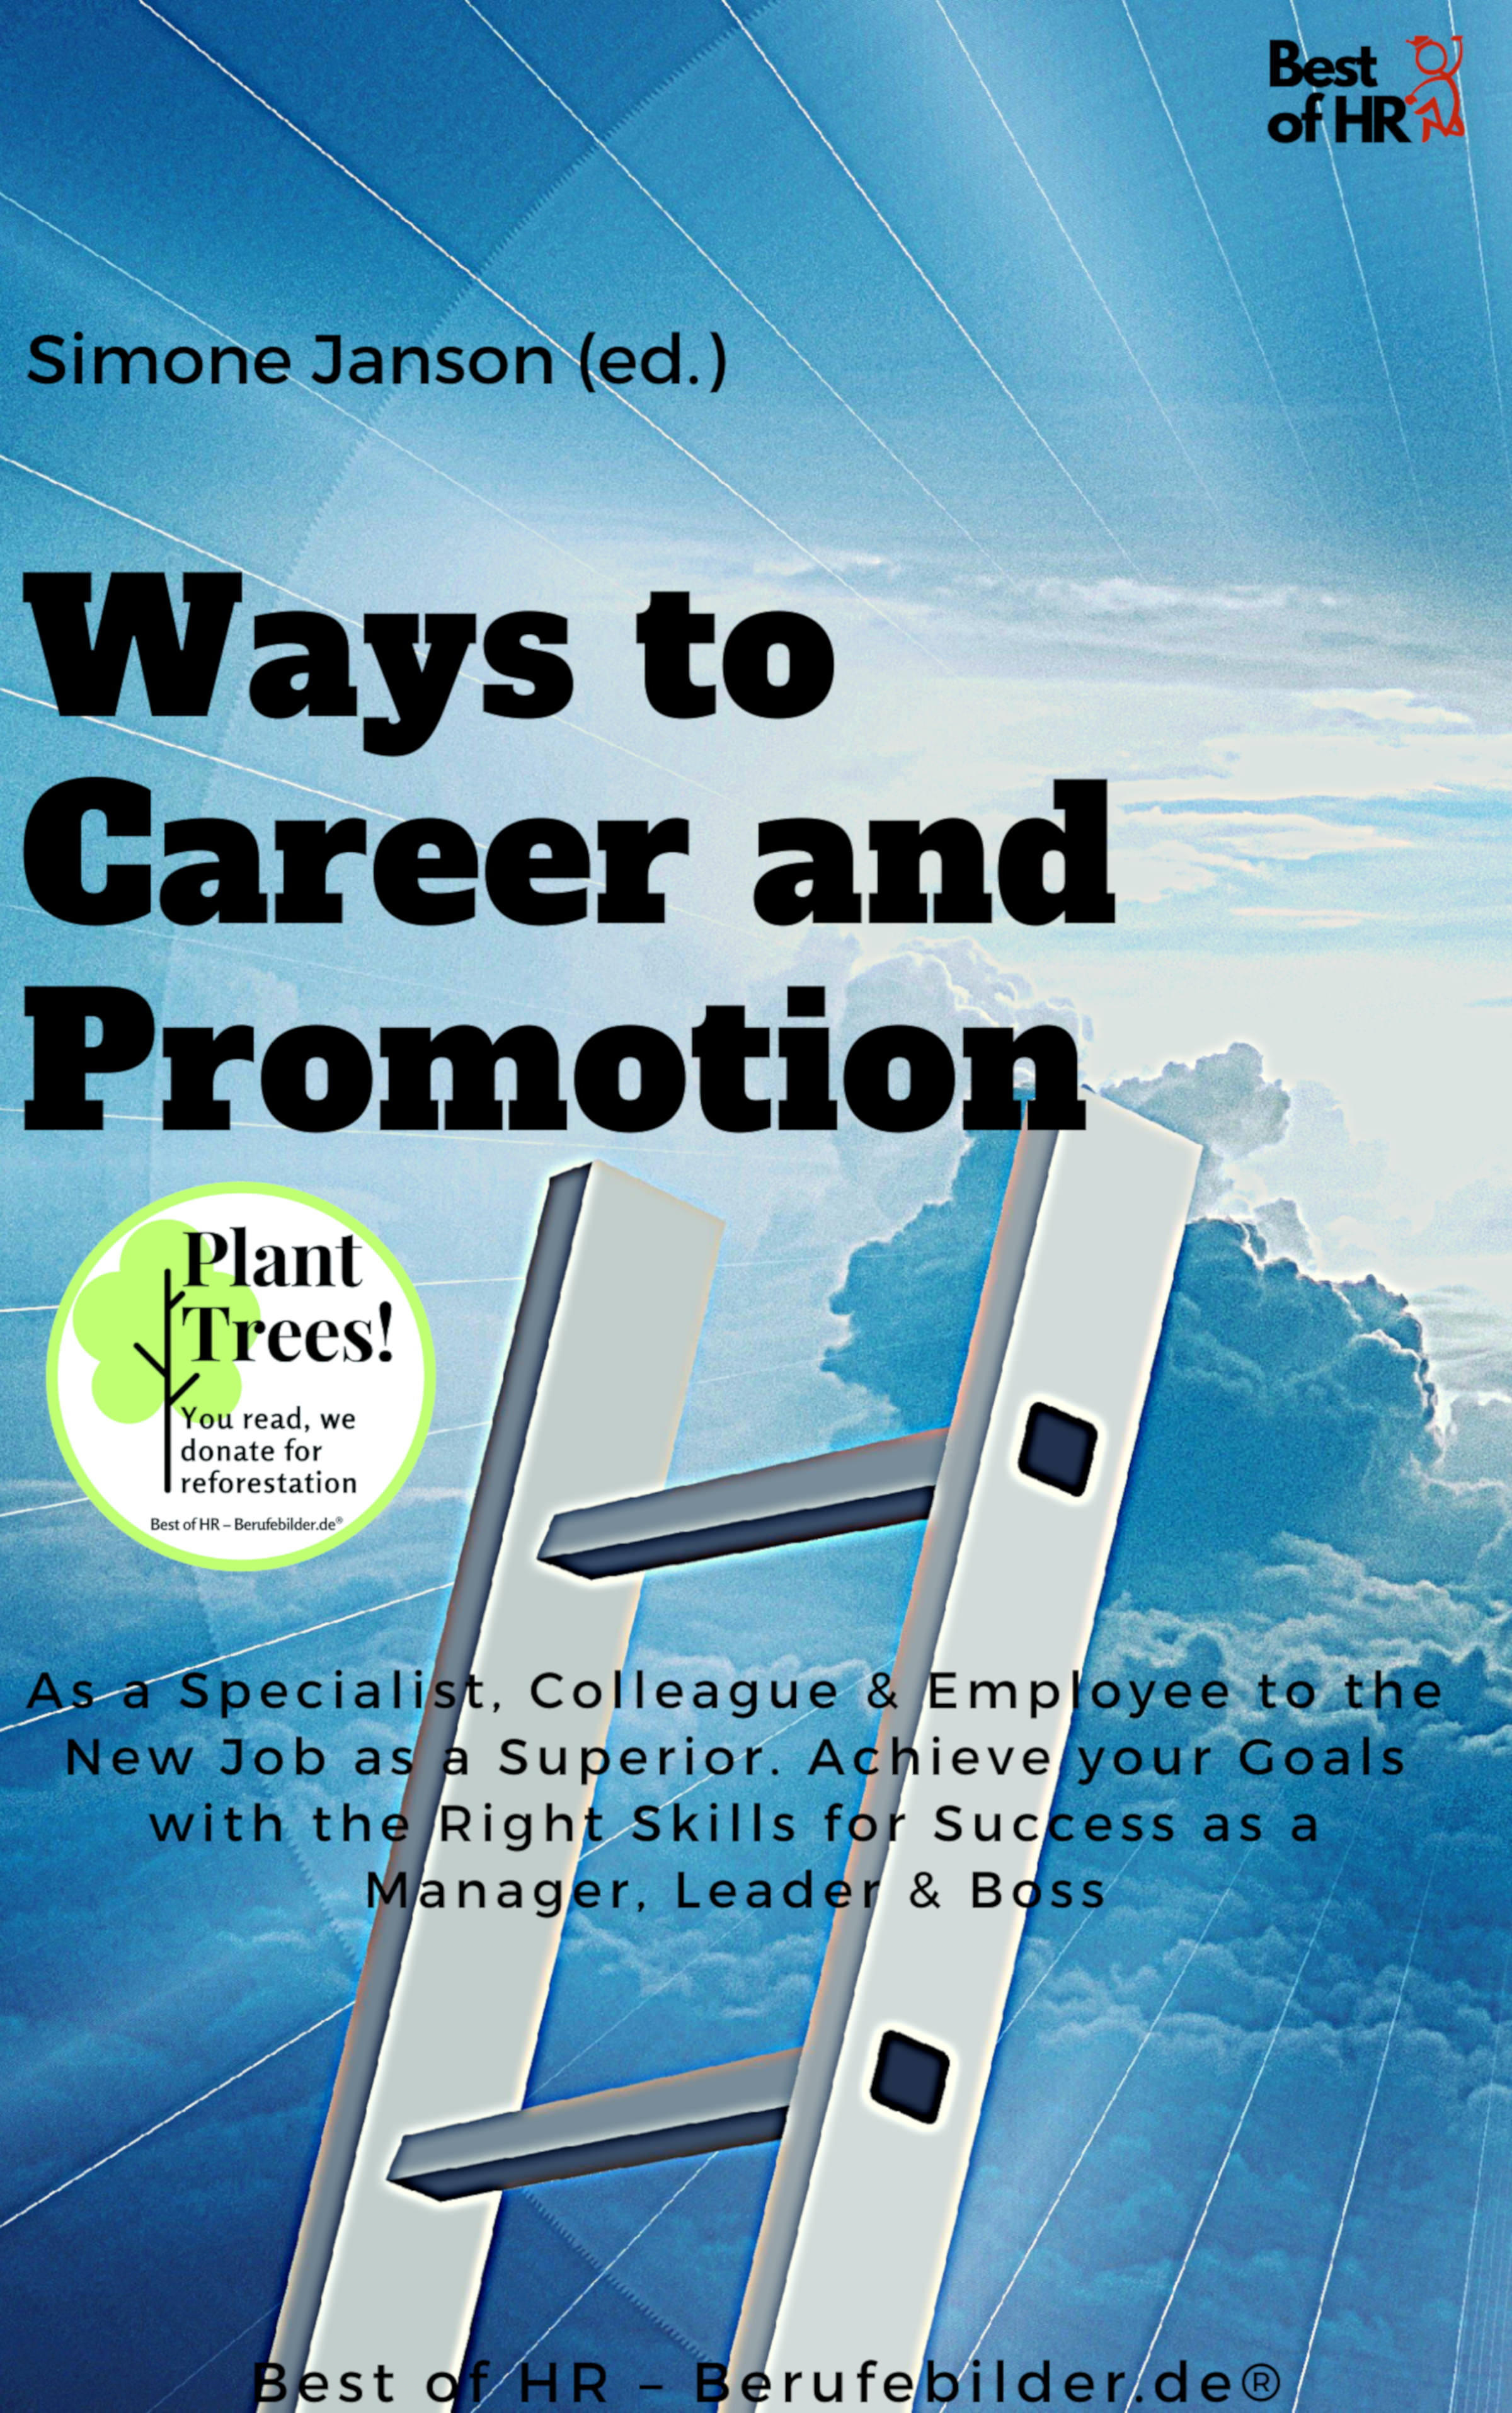 Ways to Career and Promotion